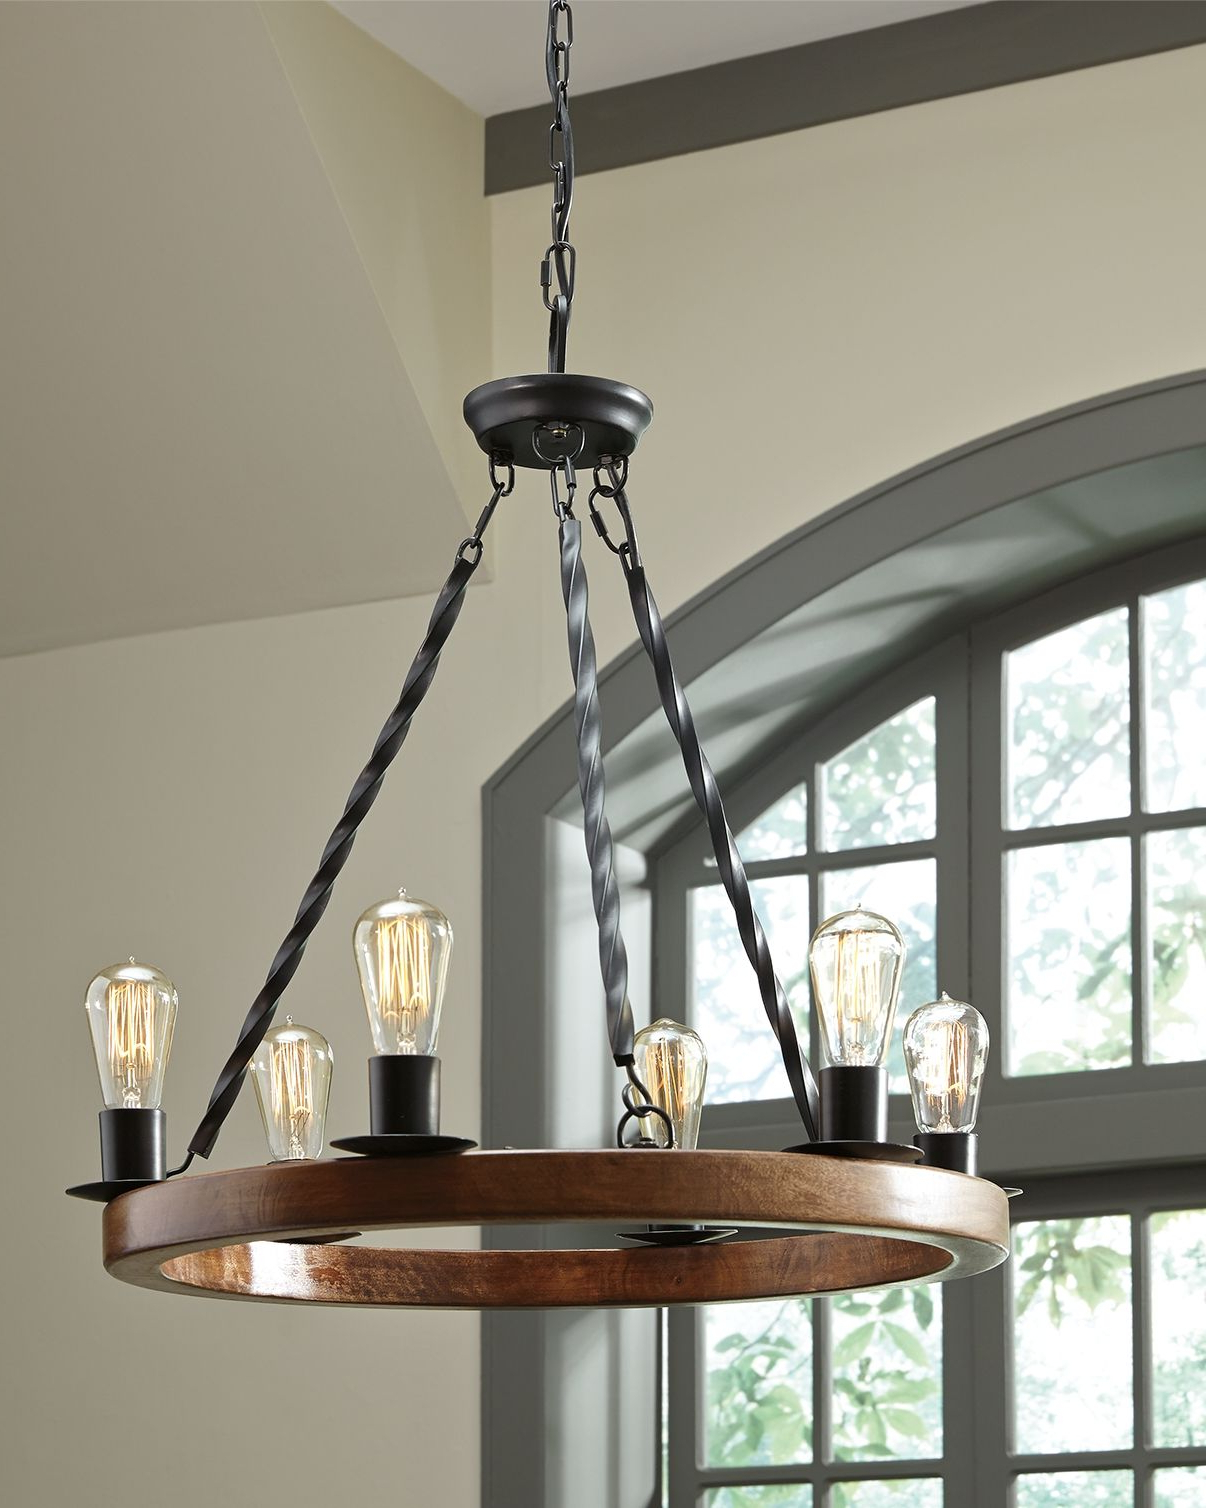 Aadhya 5 Light Drum Chandeliers For Well Liked Plato Pendant Light, Brown/black (View 6 of 25)